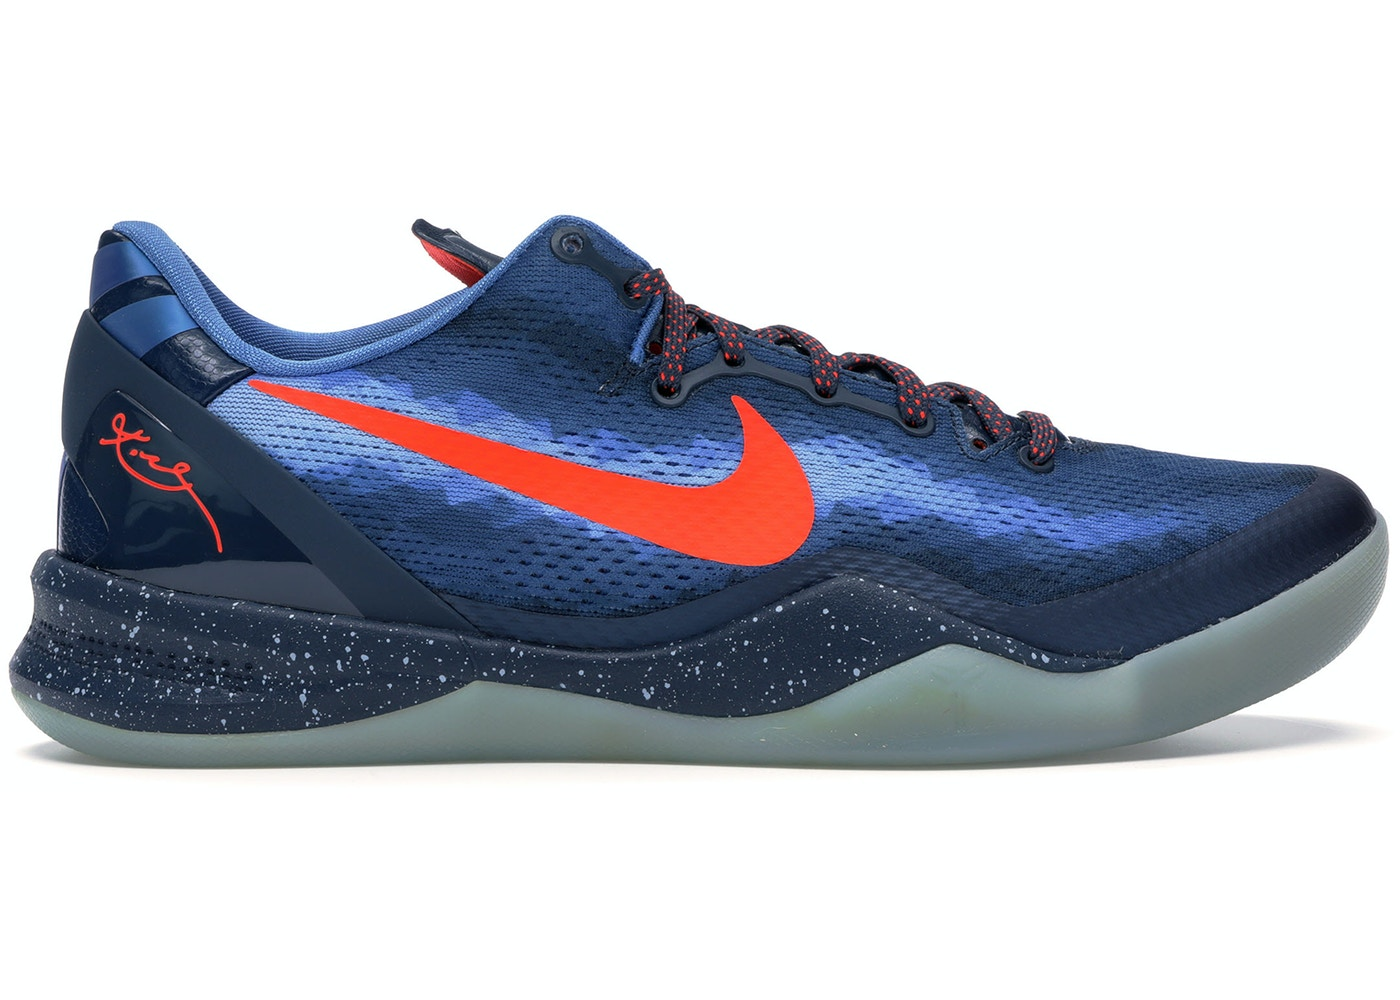 quality design 086a2 a86ac Buy Nike Kobe 8 Shoes   Deadstock Sneakers